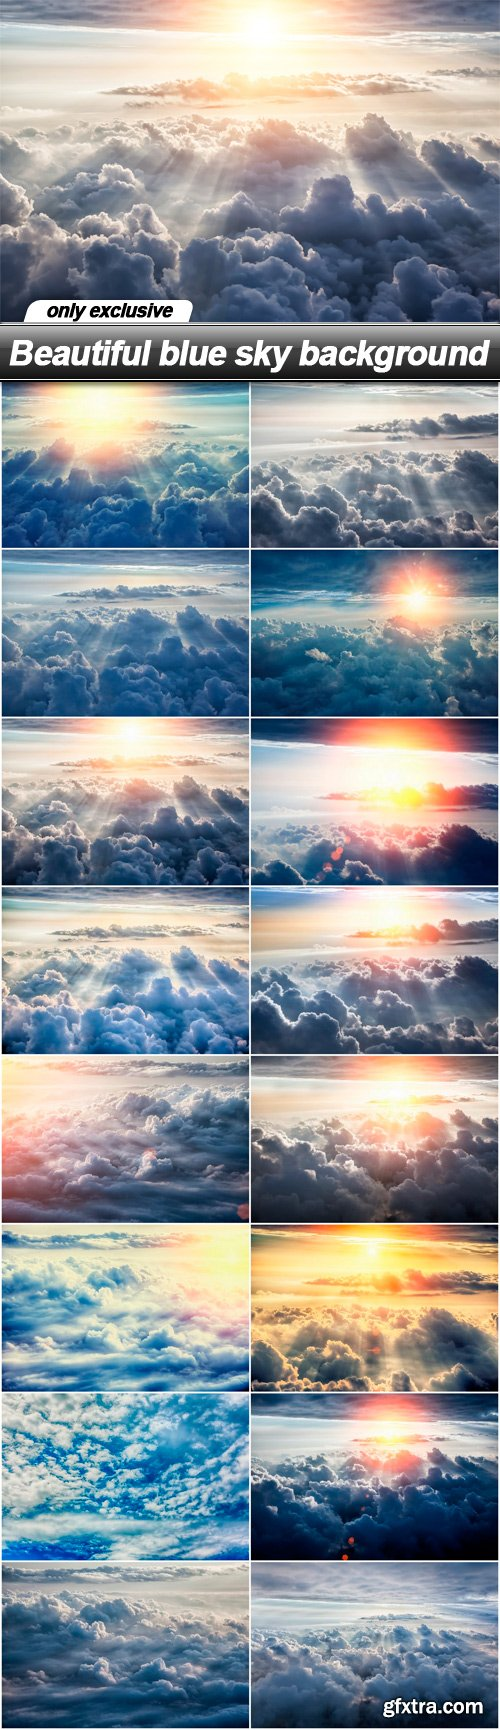 Beautiful blue sky background - 16 UHQ JPEG